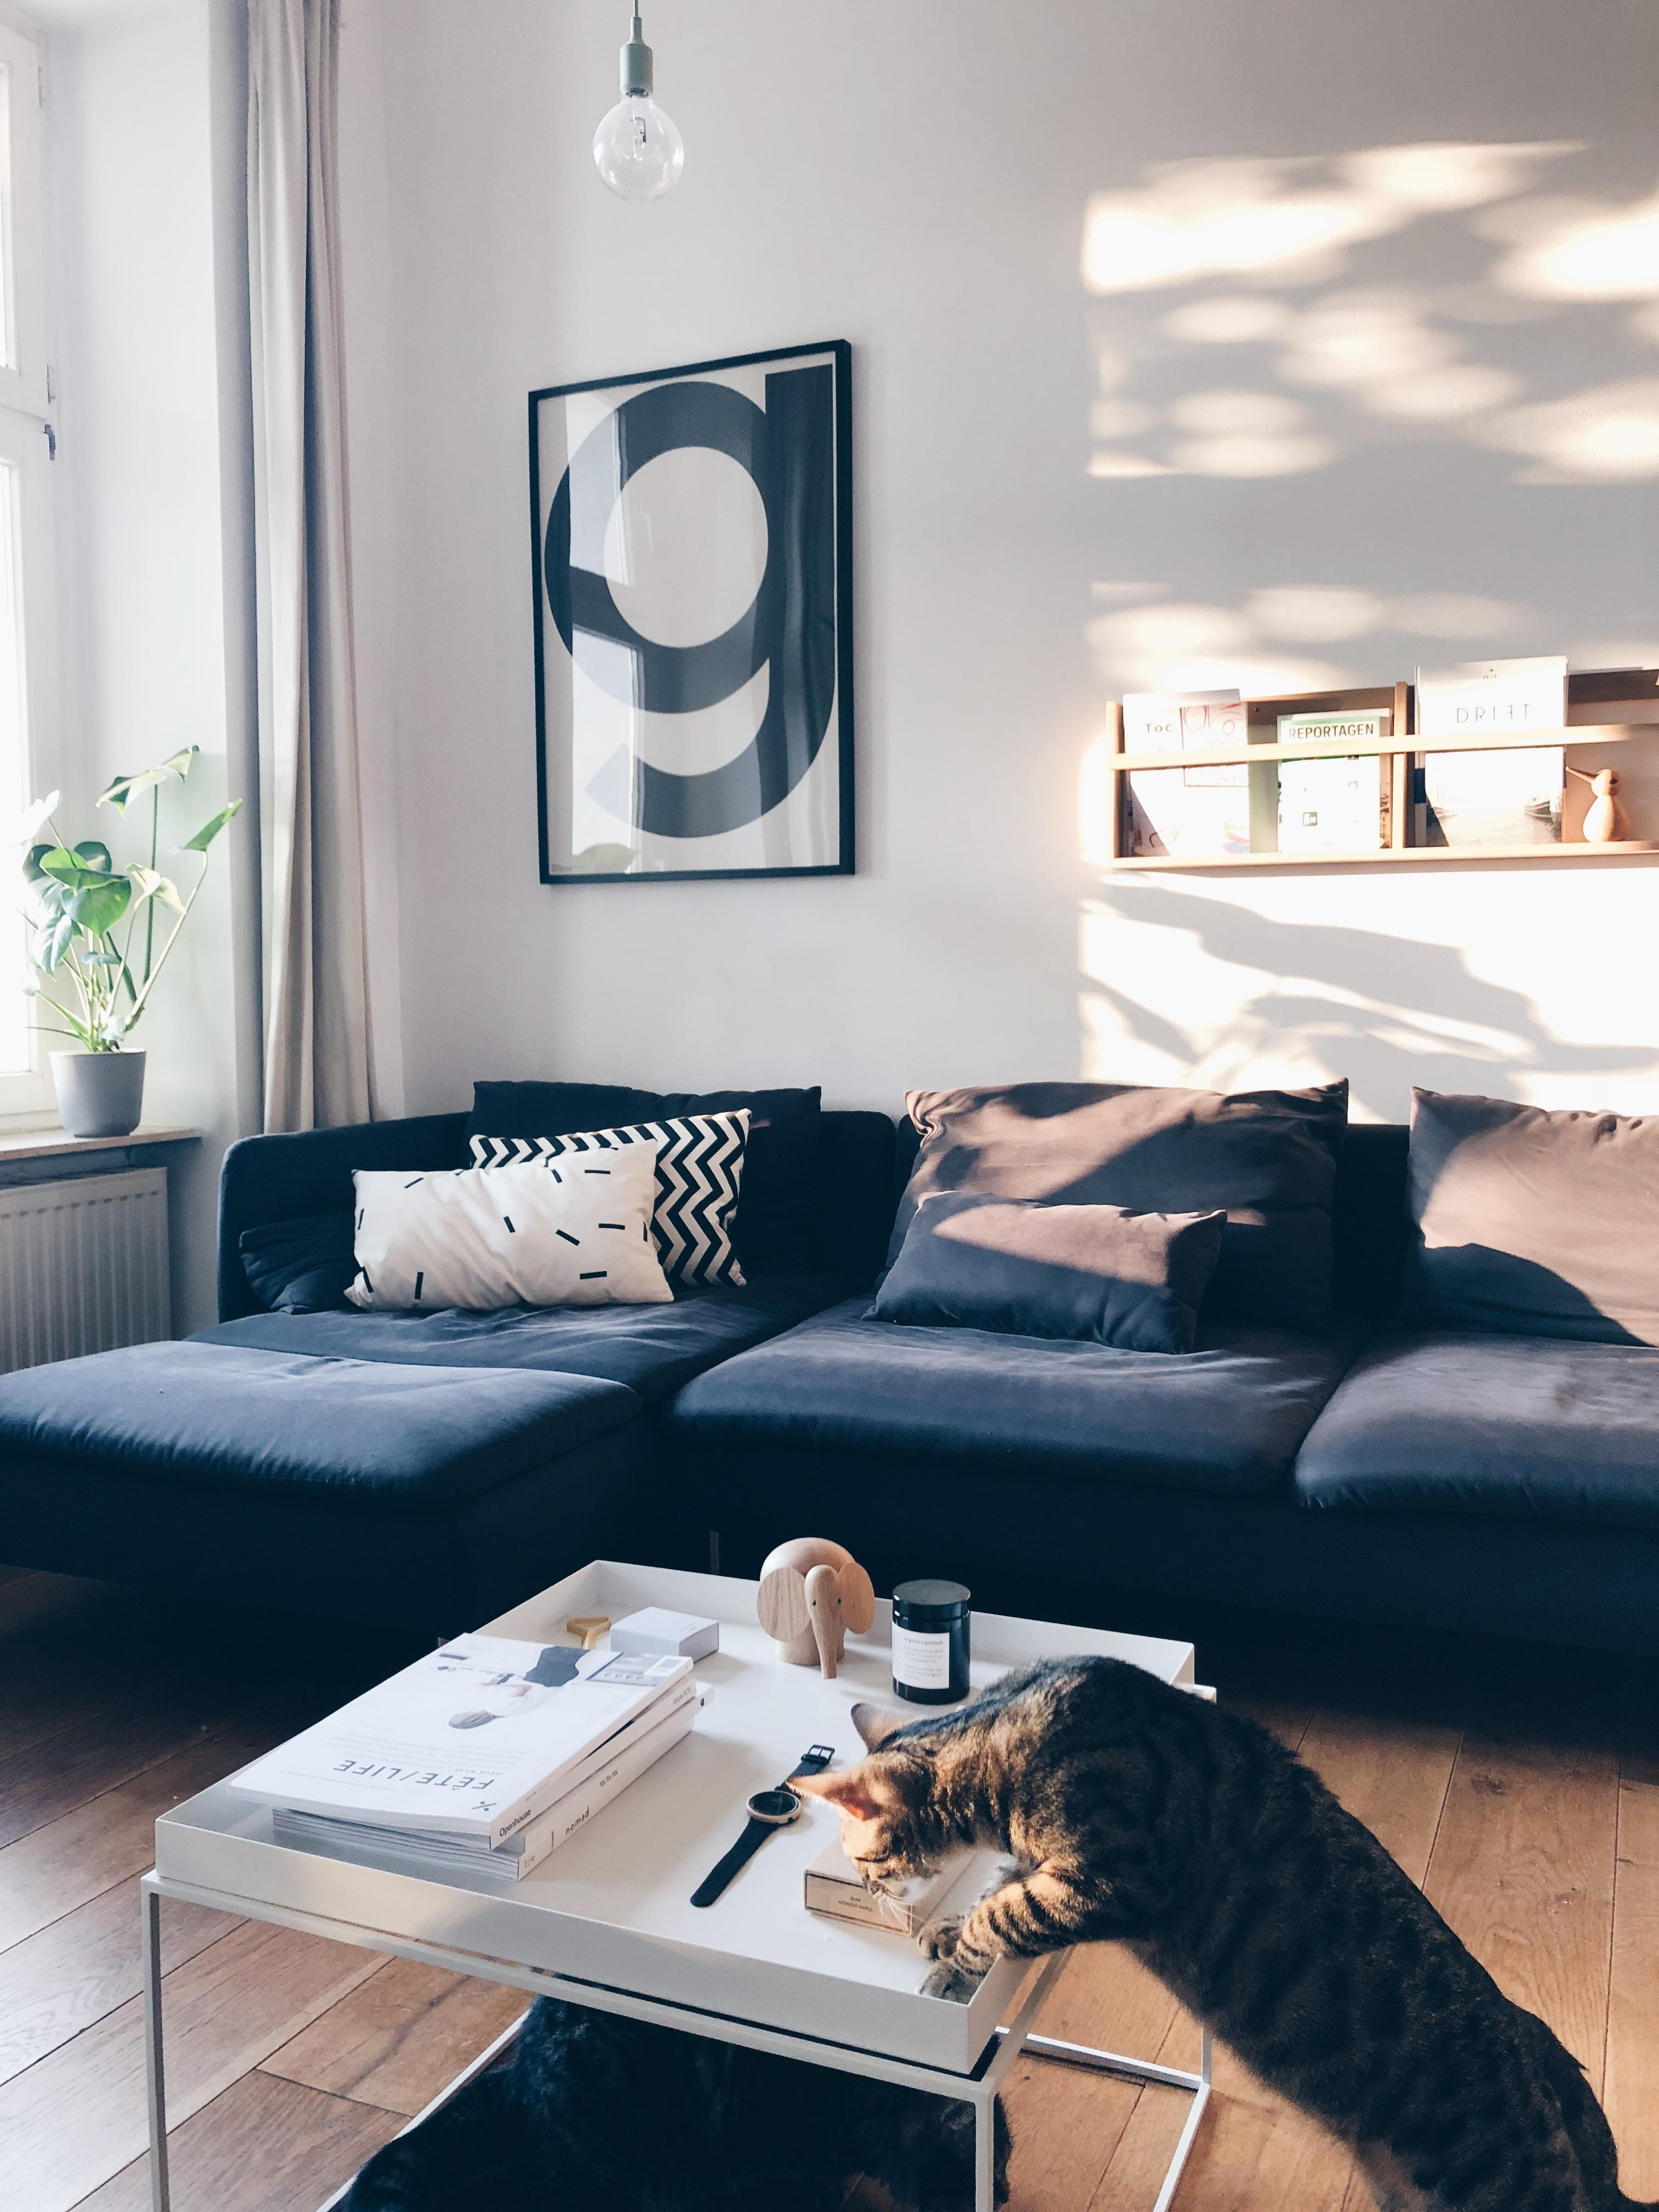 #livingroom #eveninglight #cats #scandinaviandesign